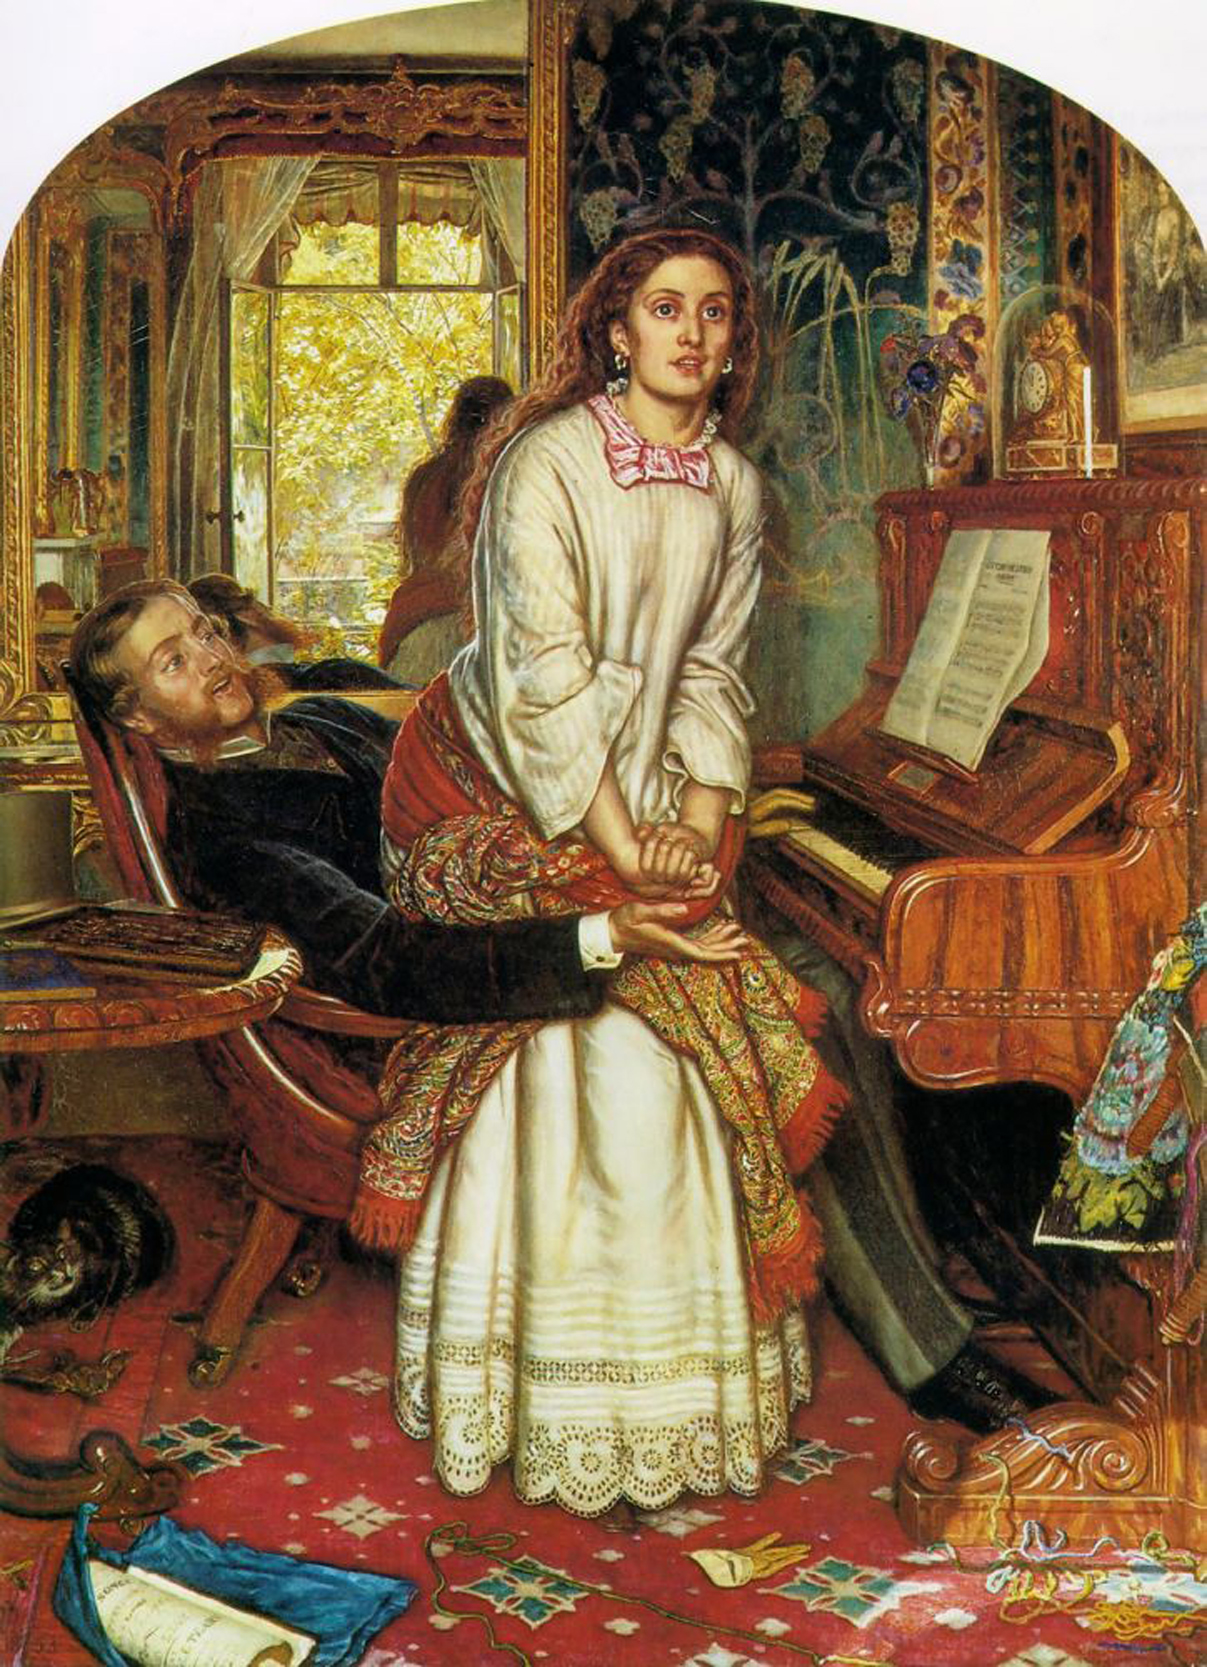 William Holman Hunt, The Awakening Conscience